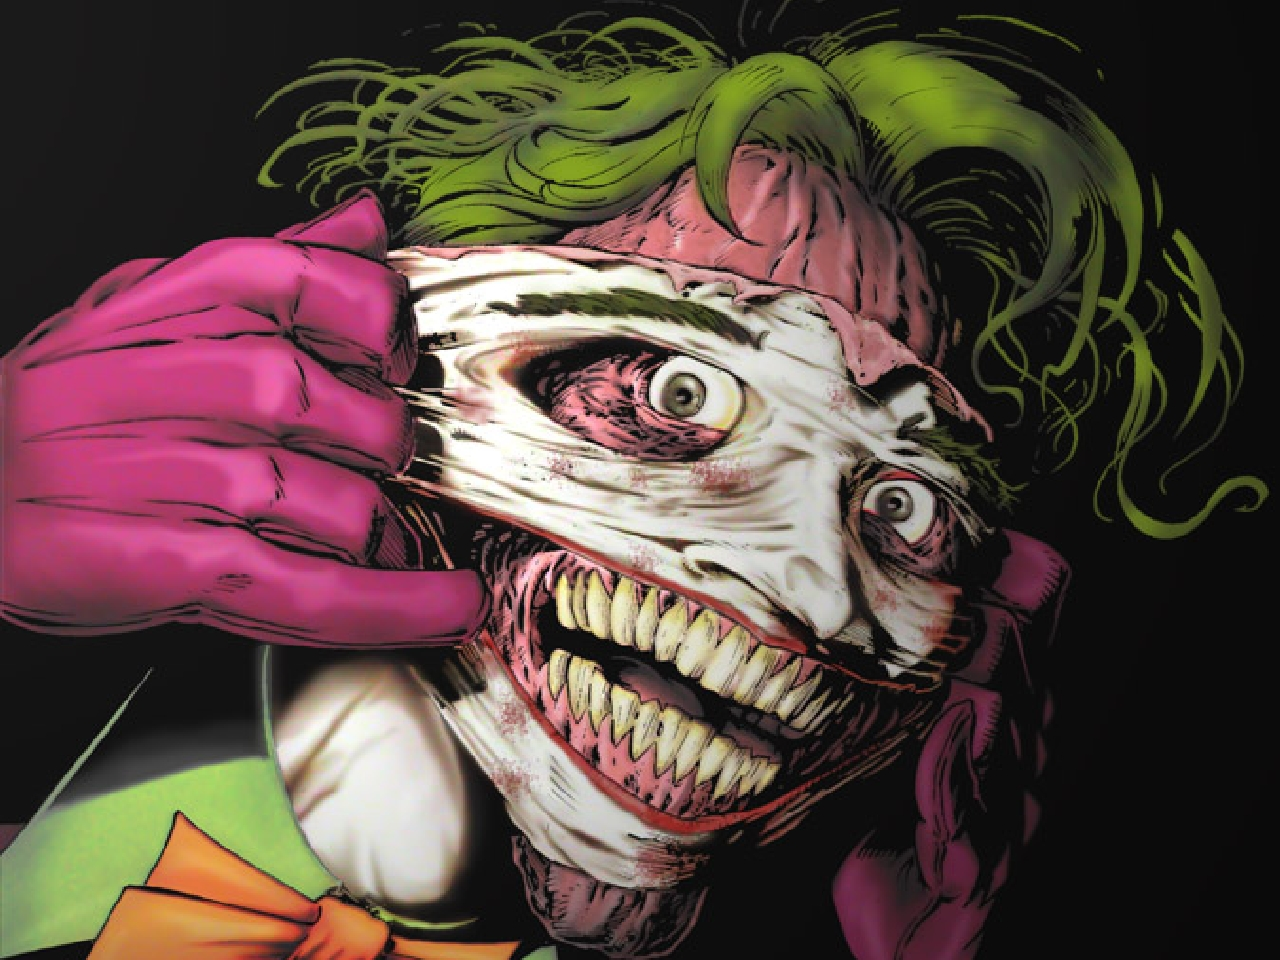 Joker Computer Wallpapers Desktop Backgrounds 1280x960 ID321238 1280x960